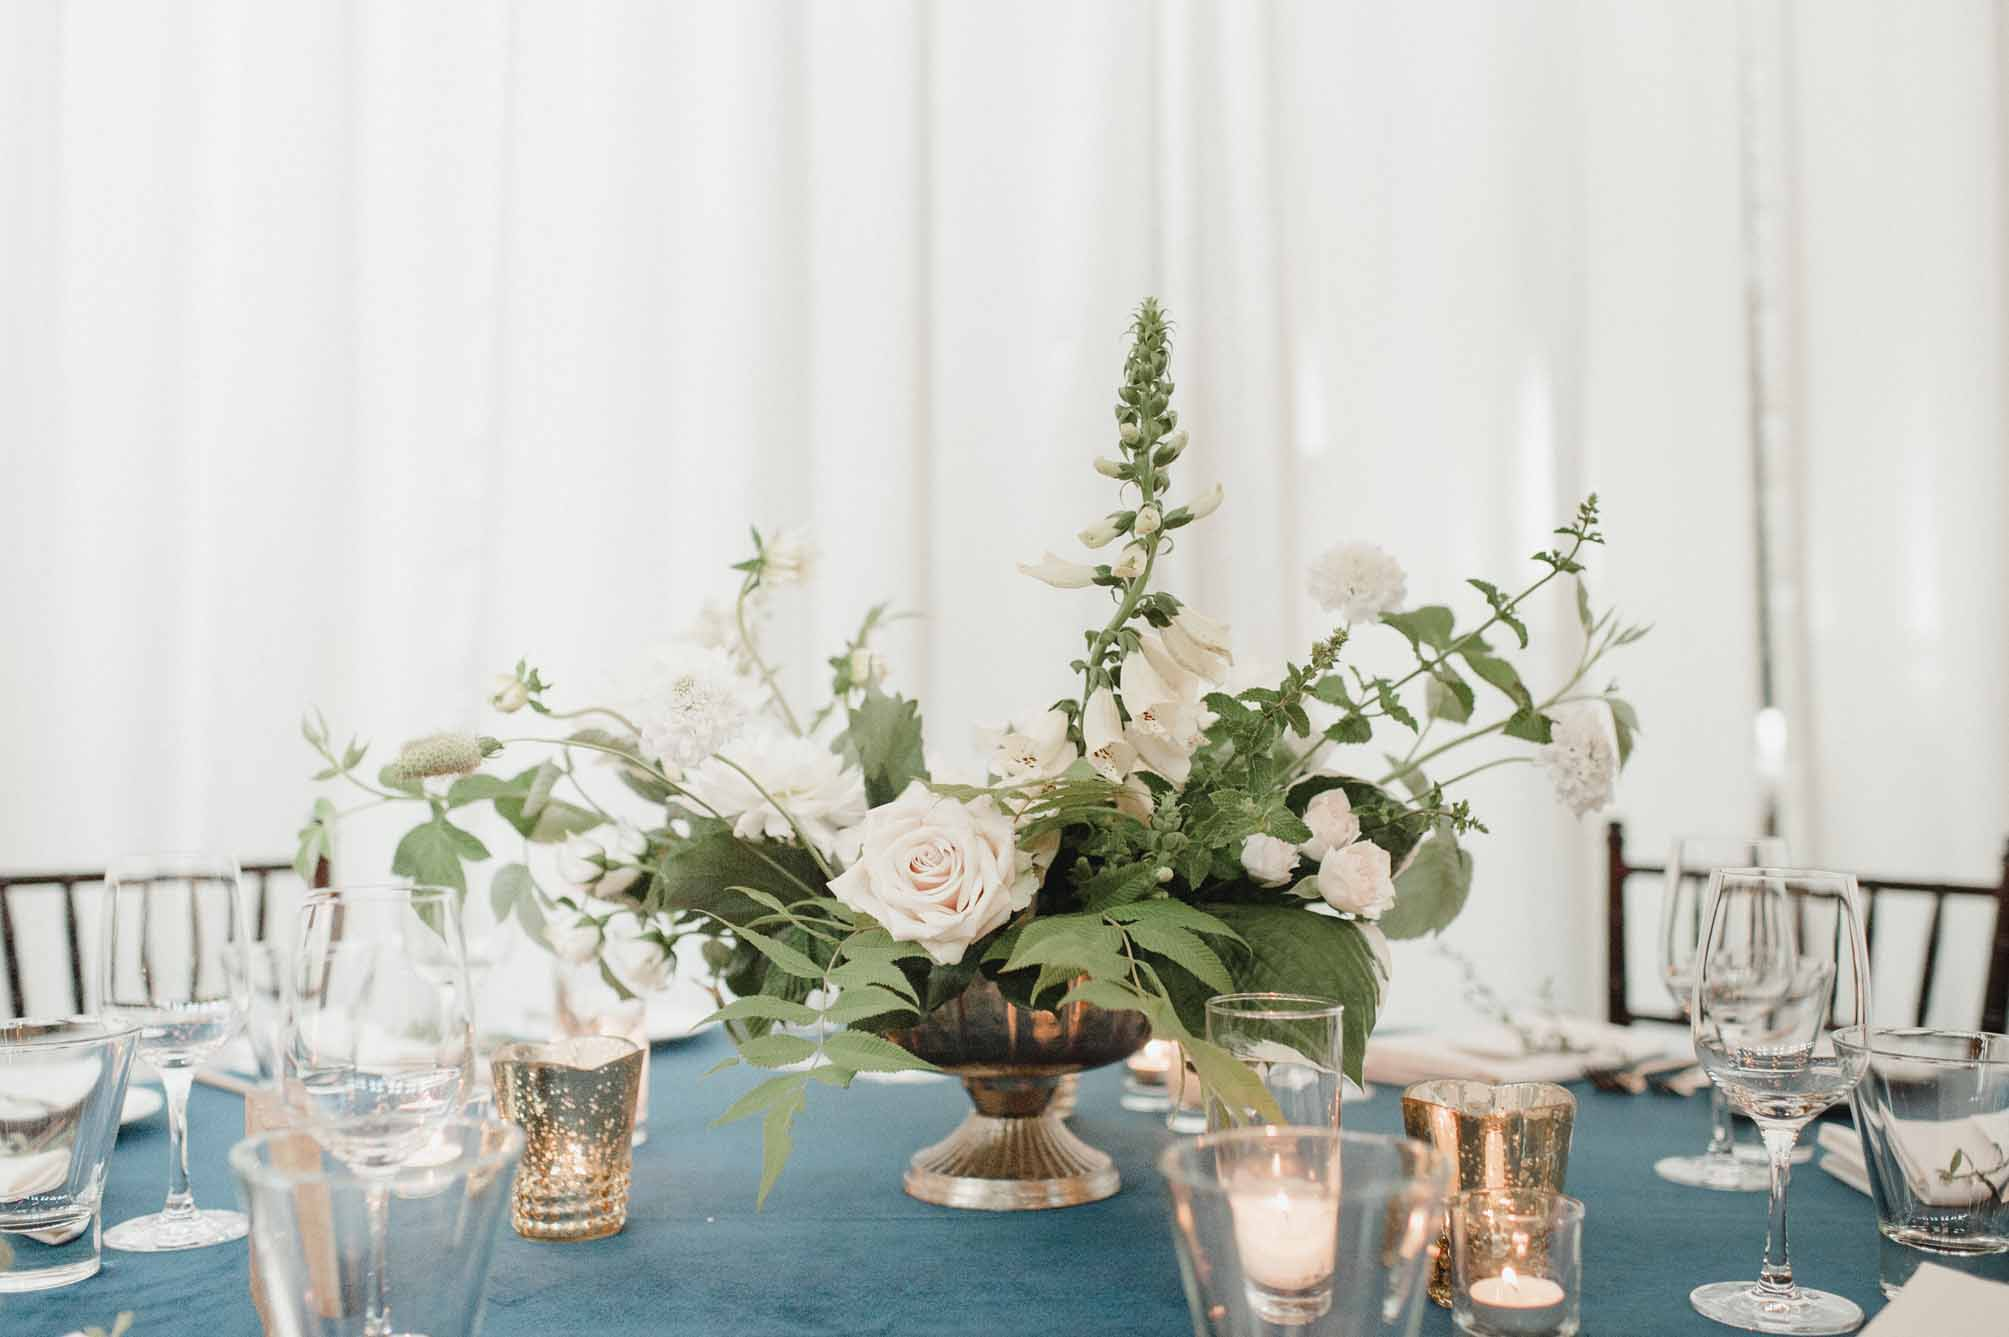 Floral compote arrangement with greenery and blush flowers, gold mercury votive candles, on blue linen - Garden-style design by Flora Nova